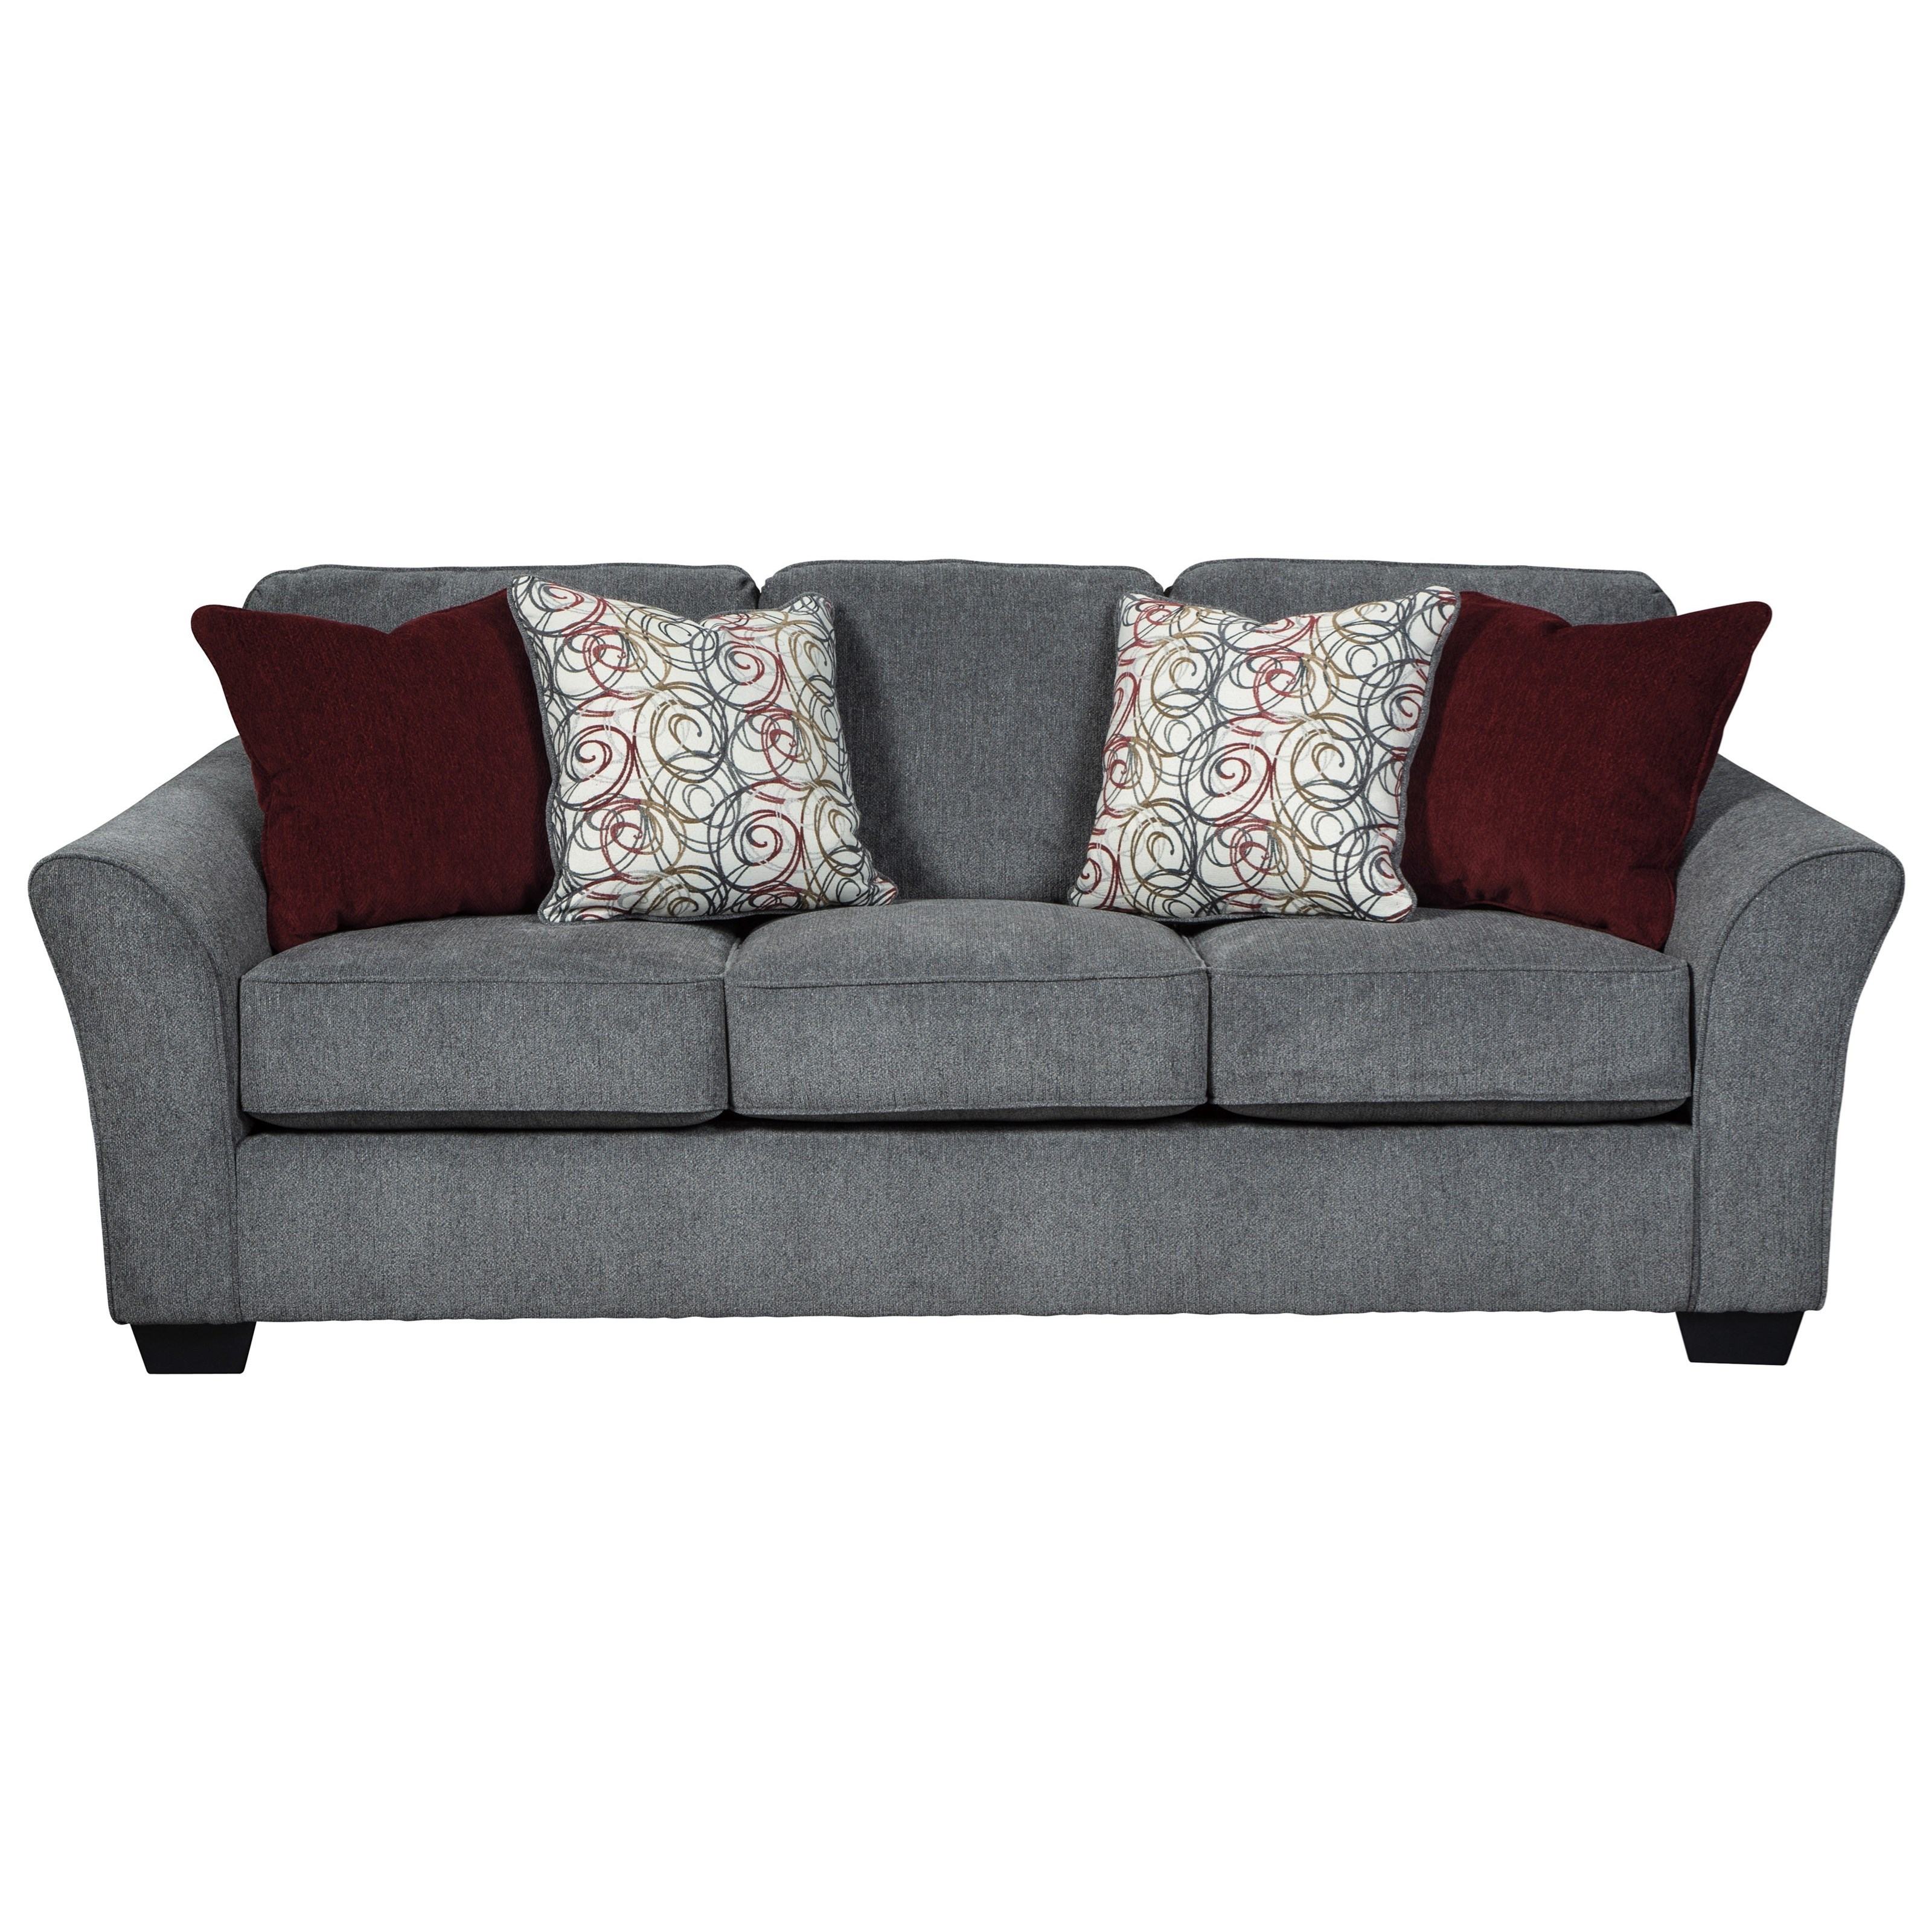 Idelbrook Sofa by Signature Design by Ashley at Lindy's Furniture Company